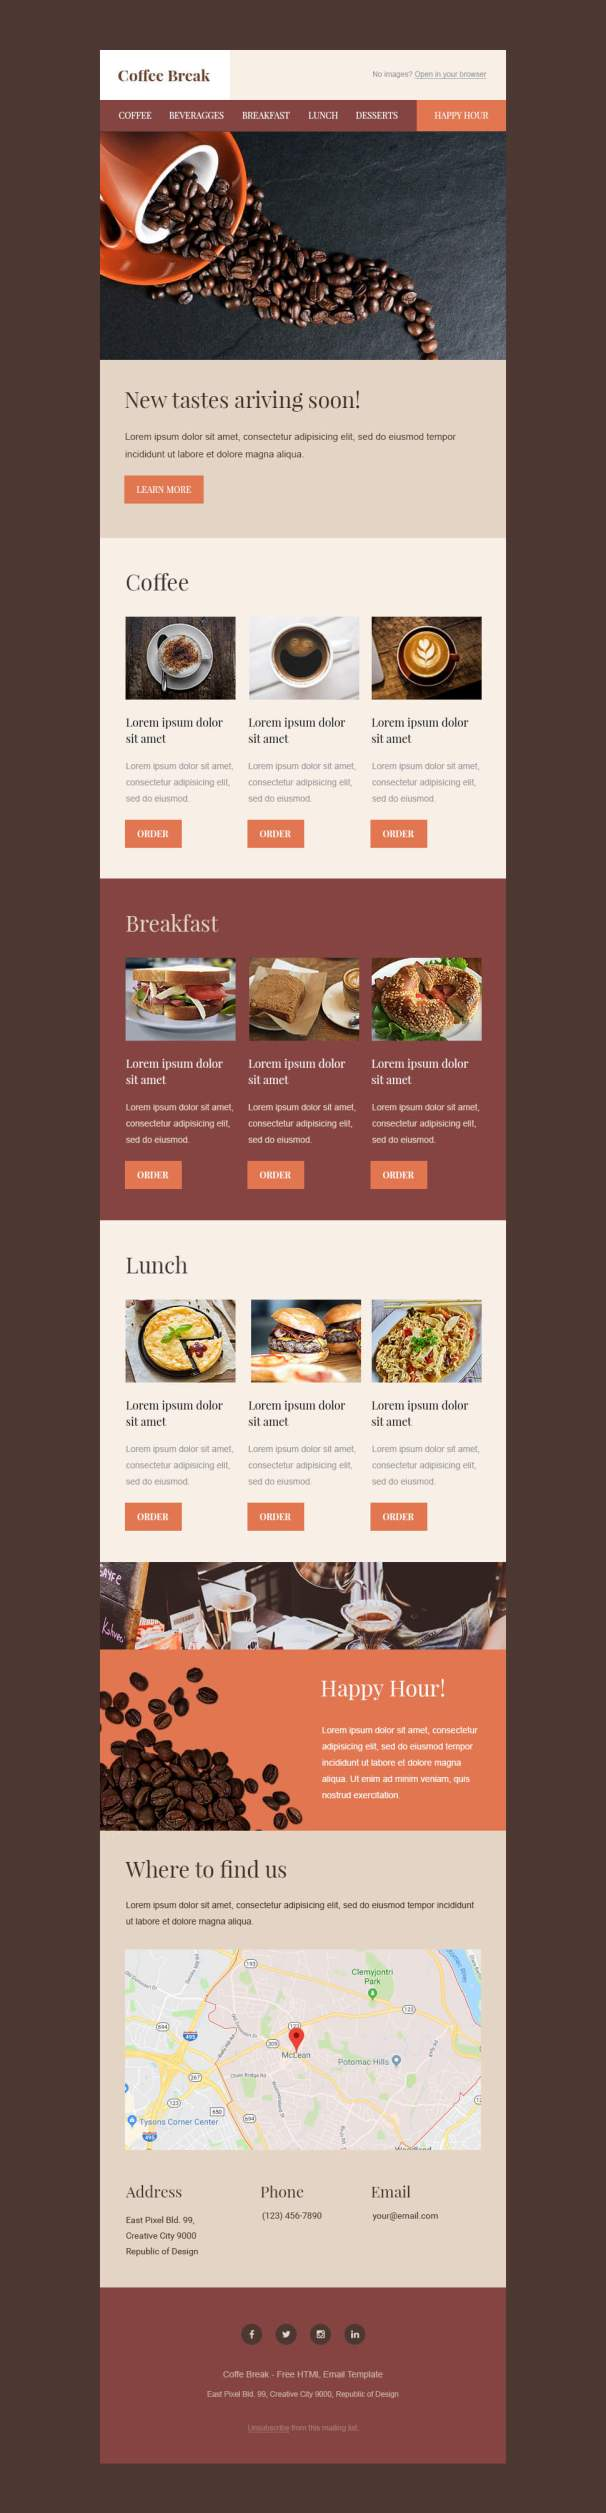 MB_Freemium-Templates_Restaurant_3